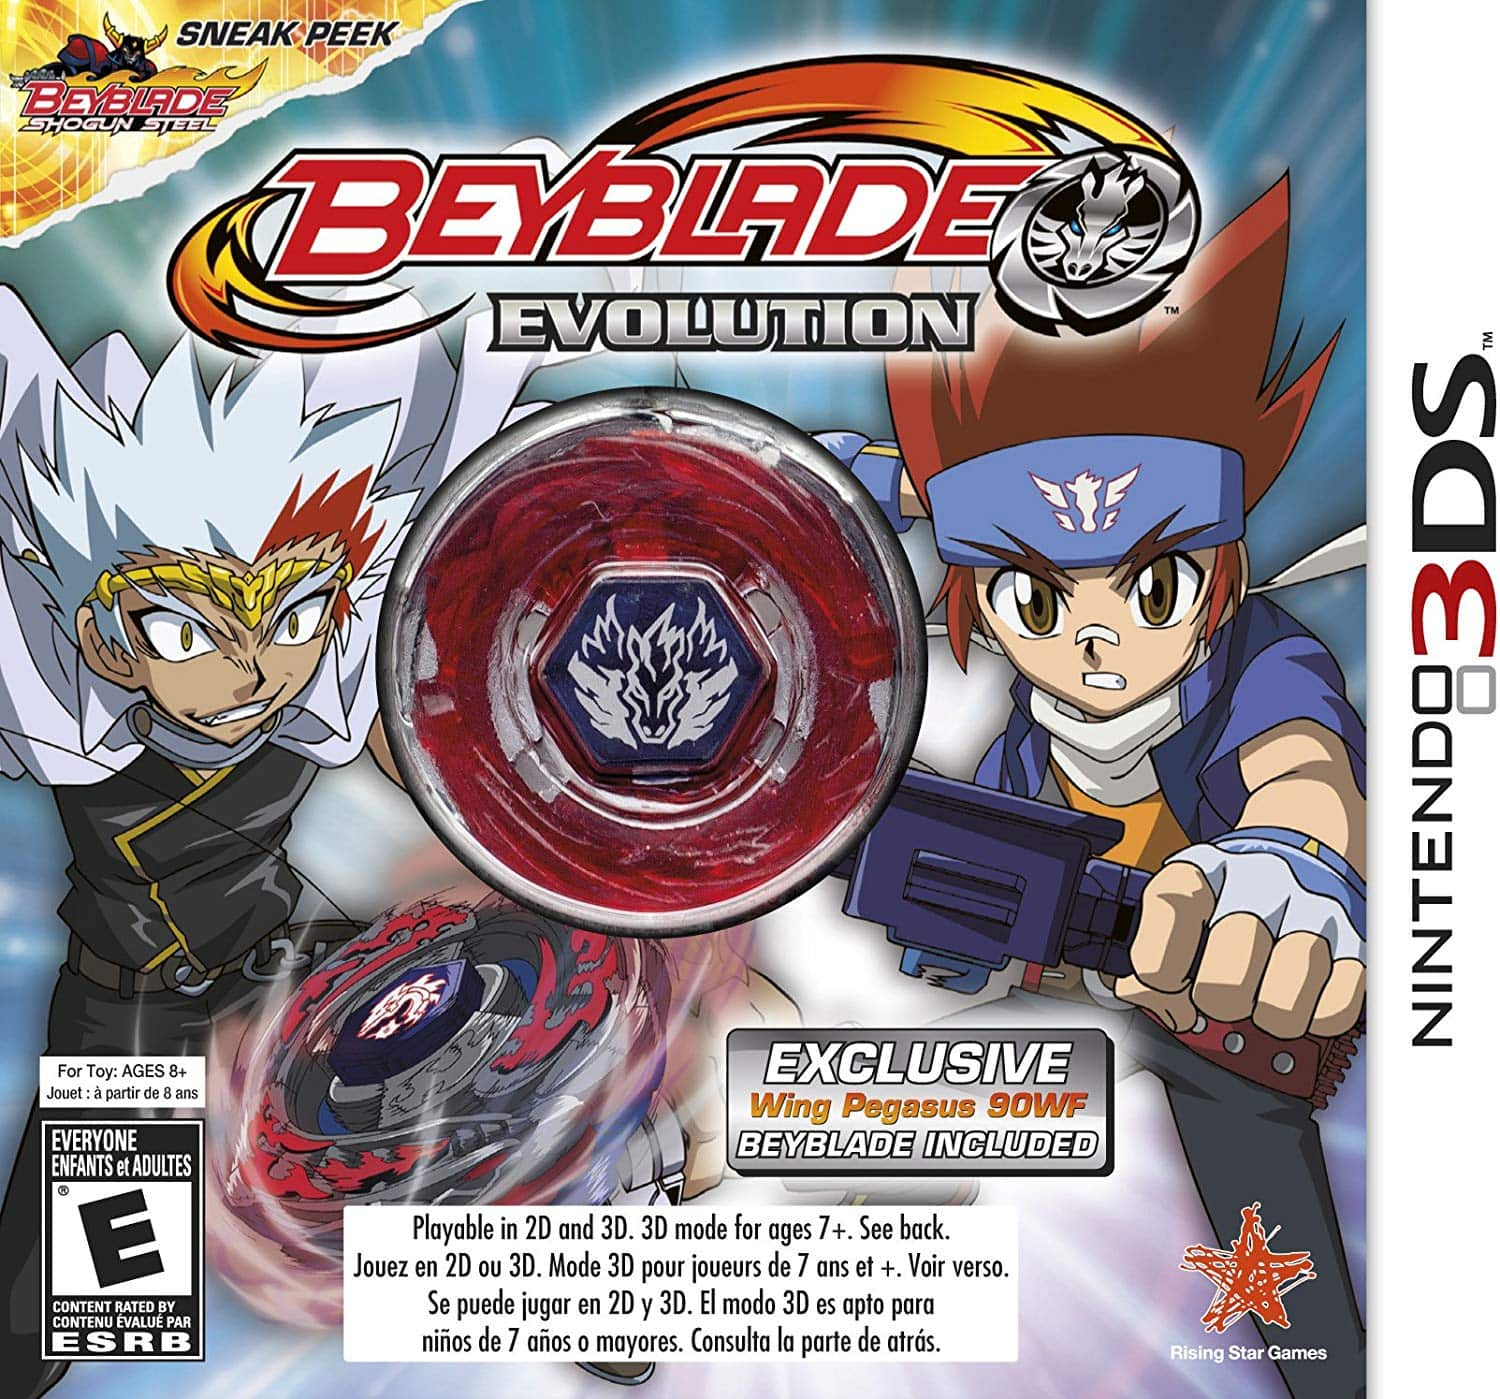 BEYBLADE: Evolution Collector's Edition with Wing Pegasus - Nintendo 3DS game $9.99 with free prime shipping